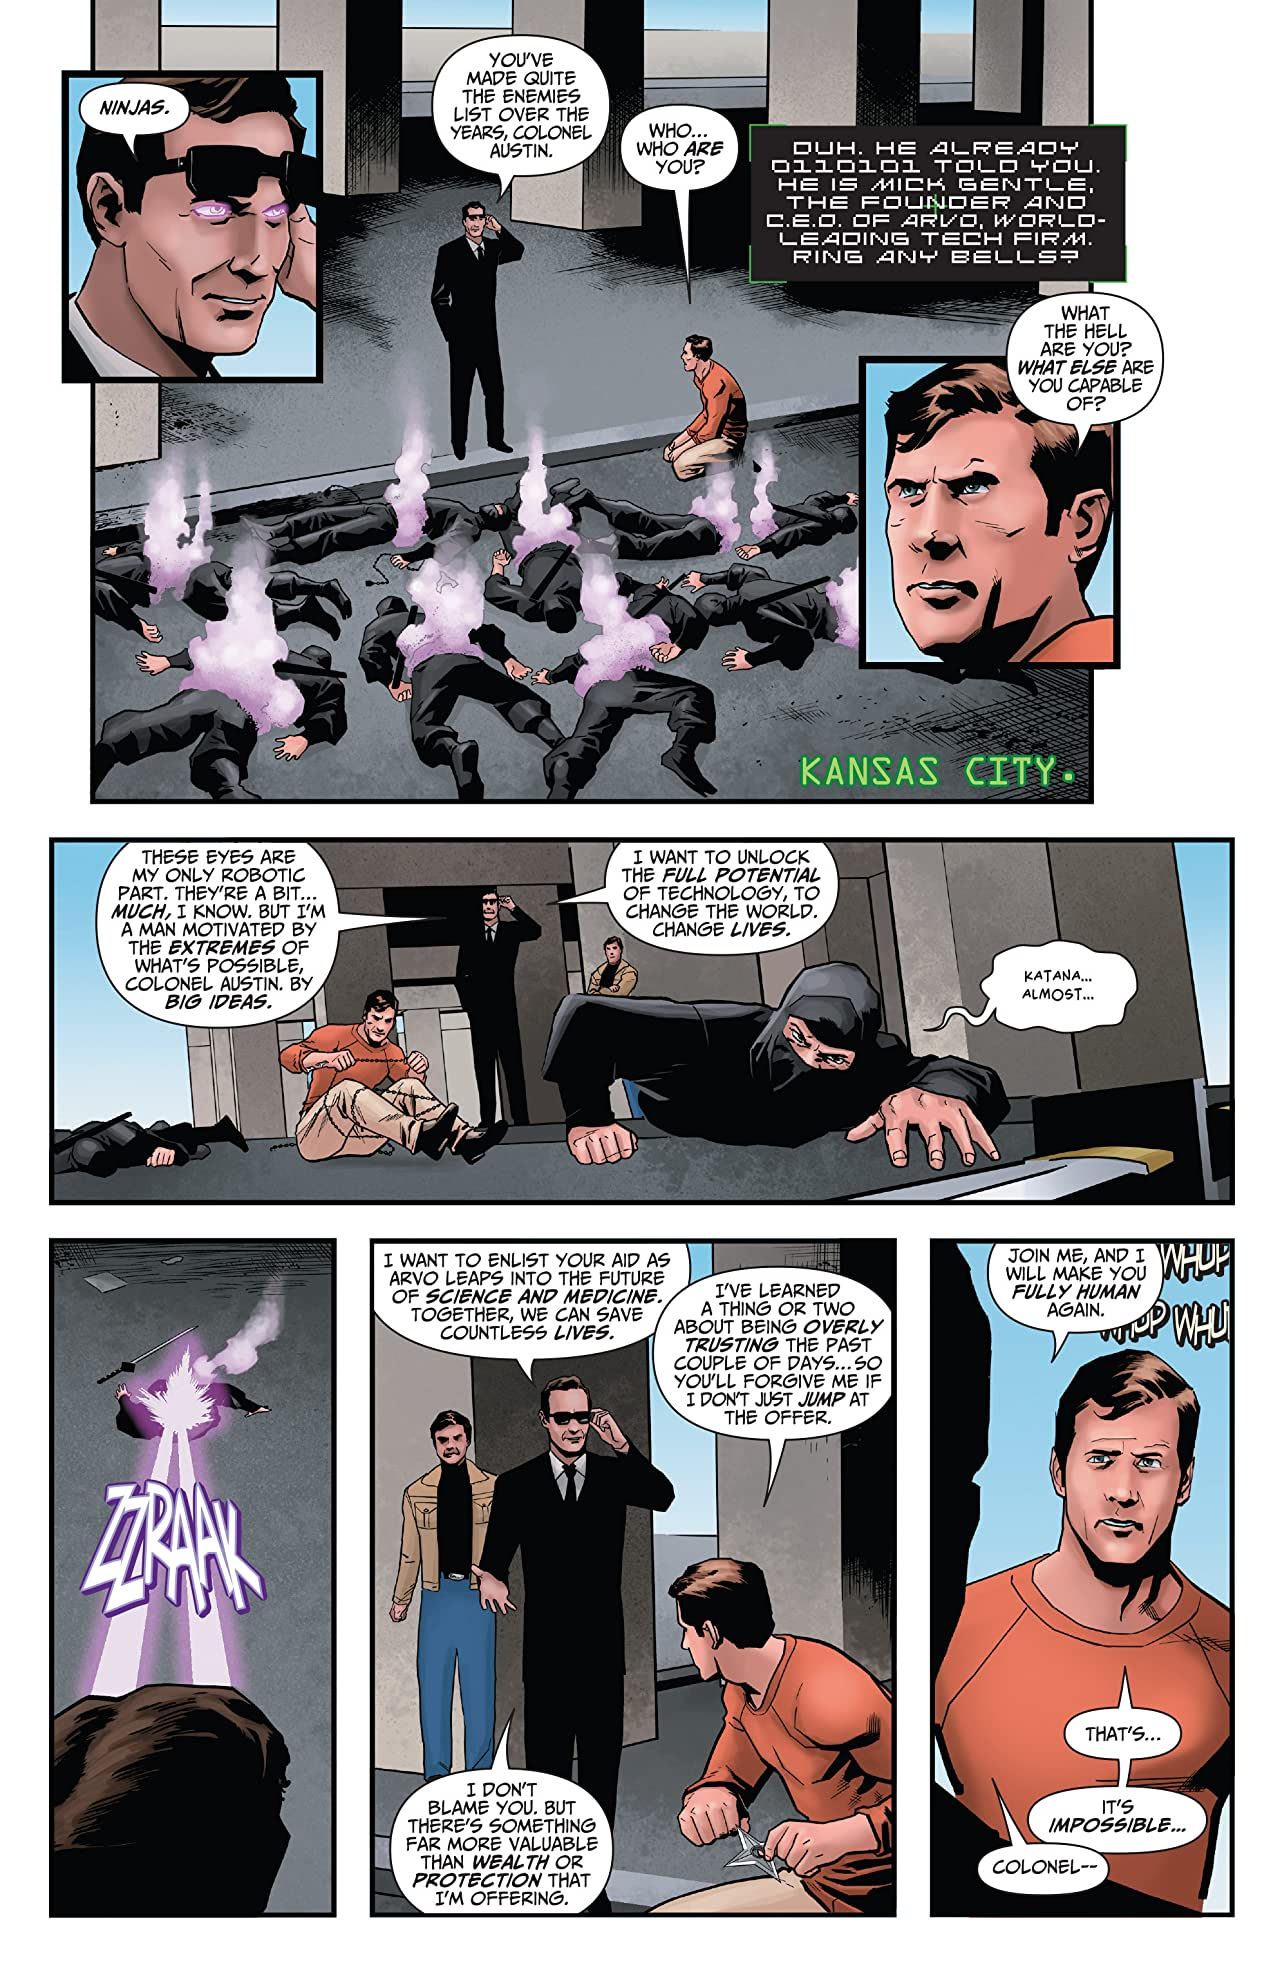 The Six Million Dollar Man: Fall of Man #2: Digital Exclusive Edition